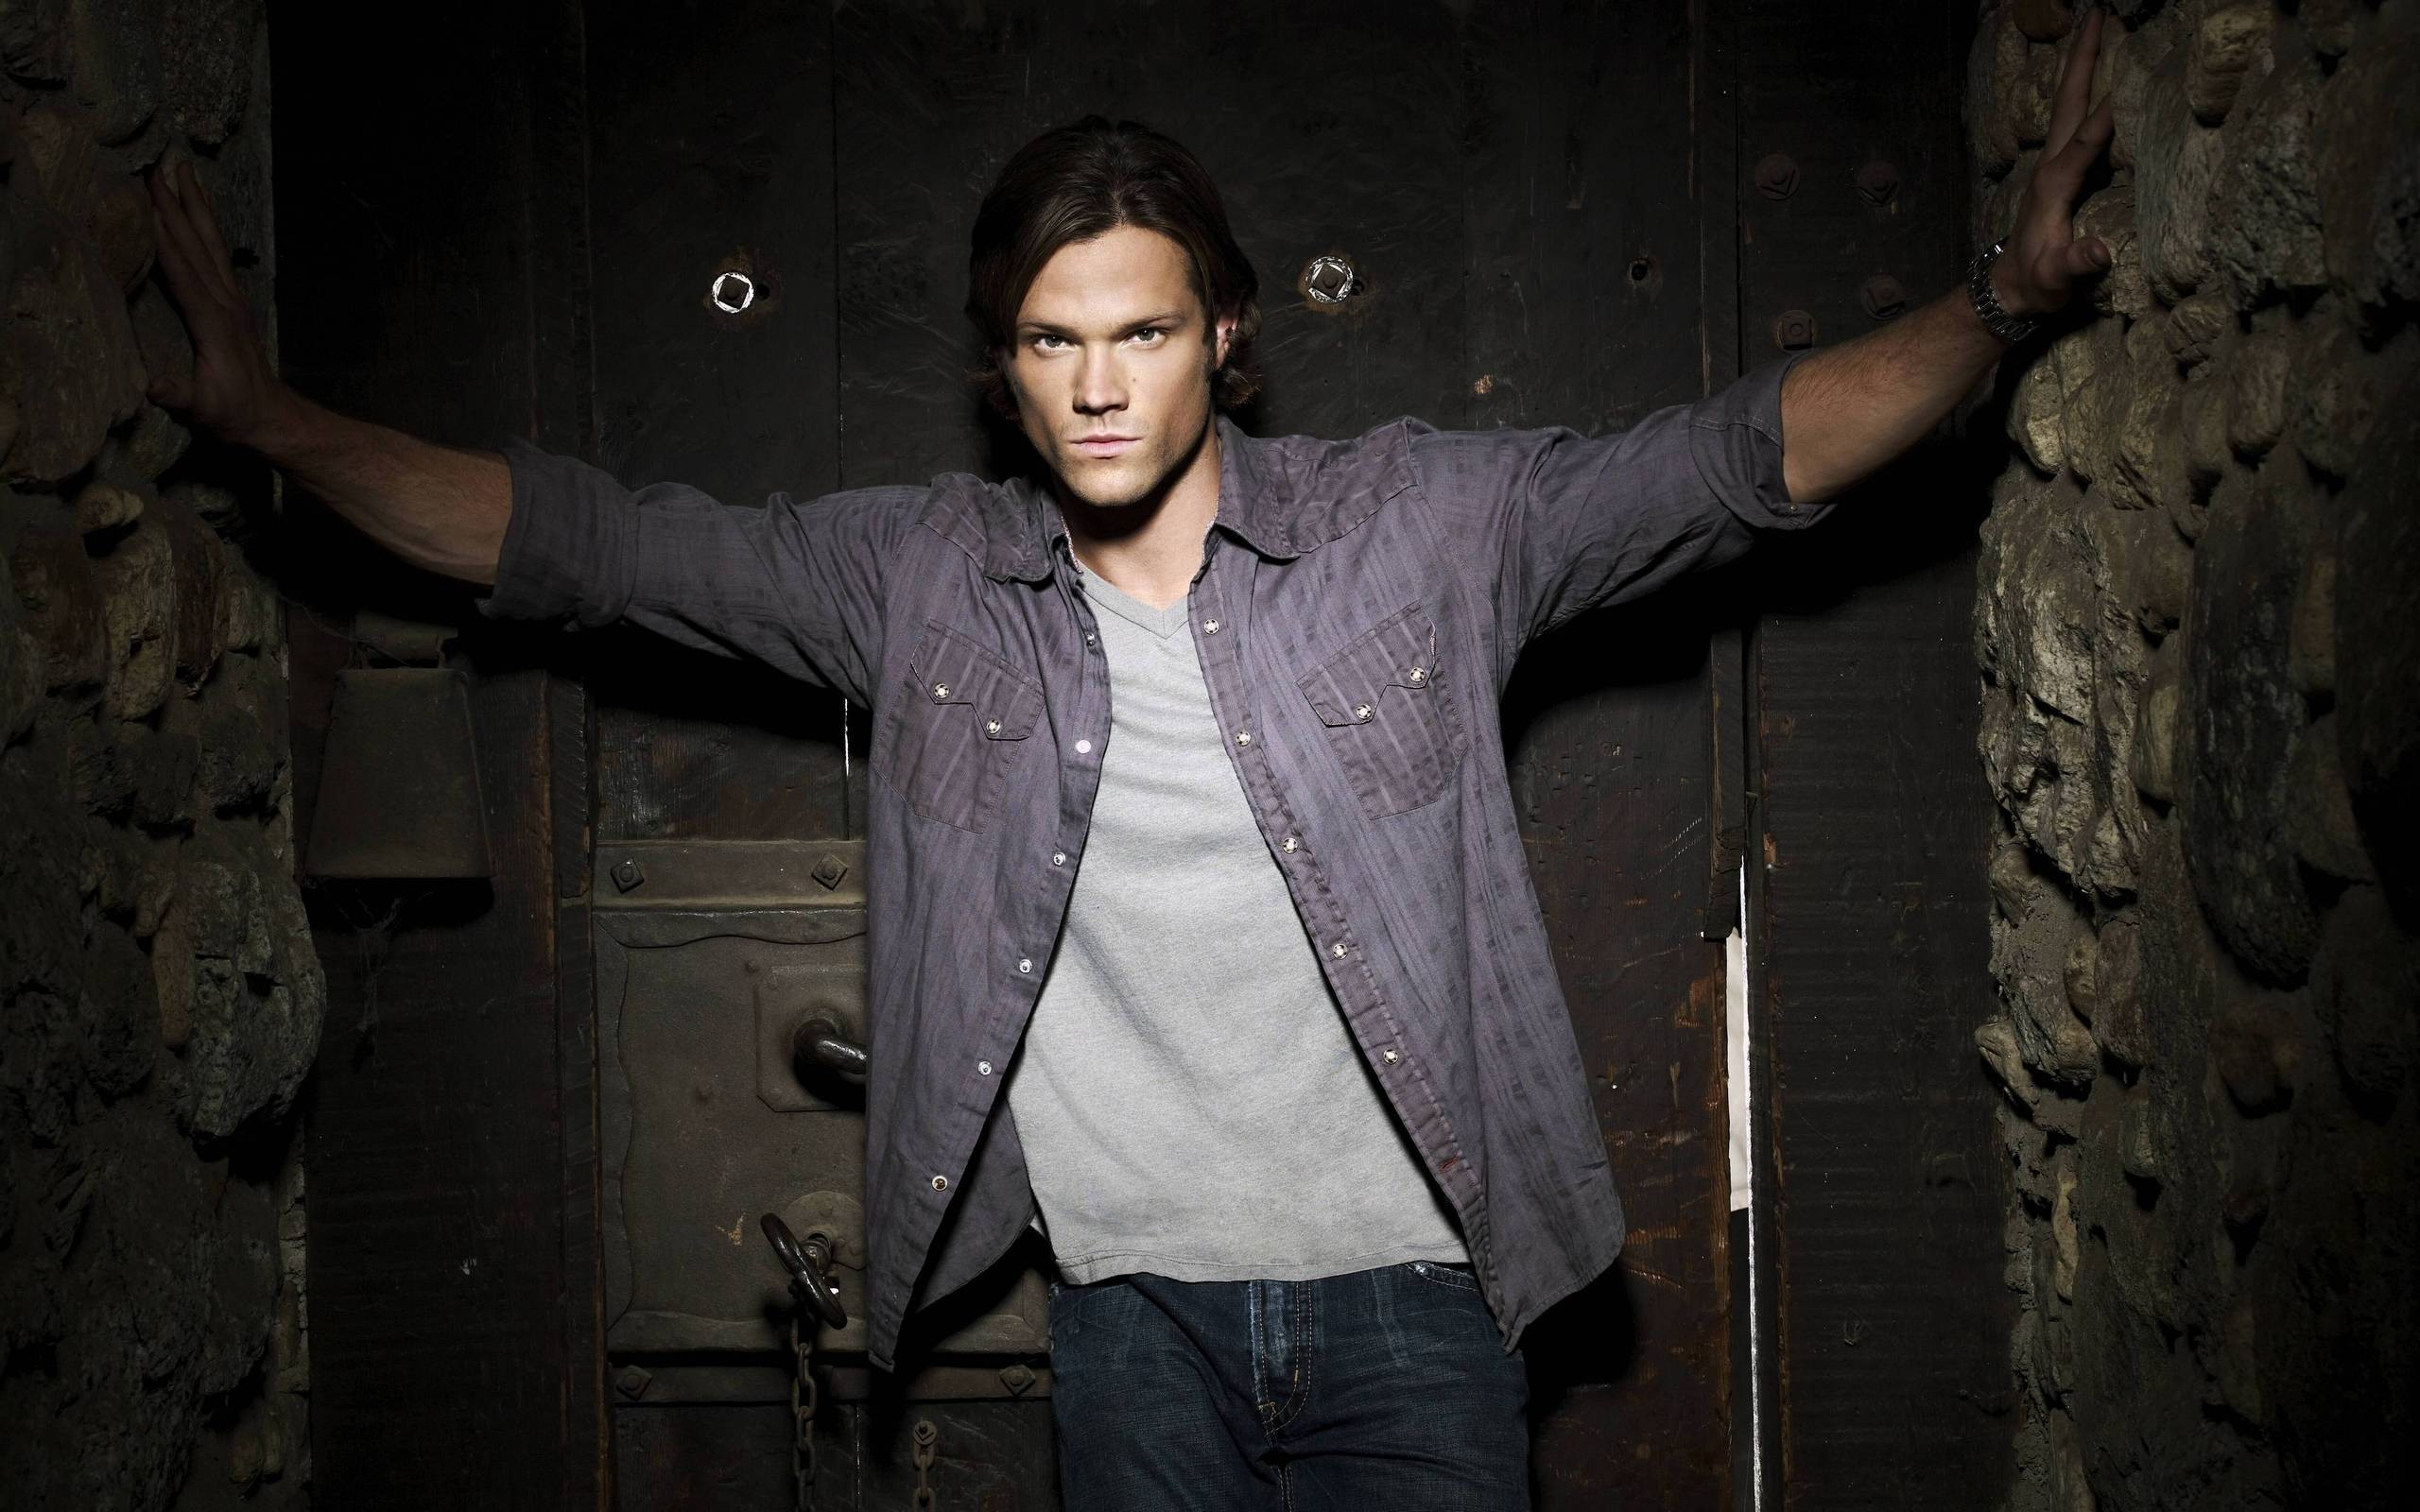 Men jared padalecki HD Wallpaper